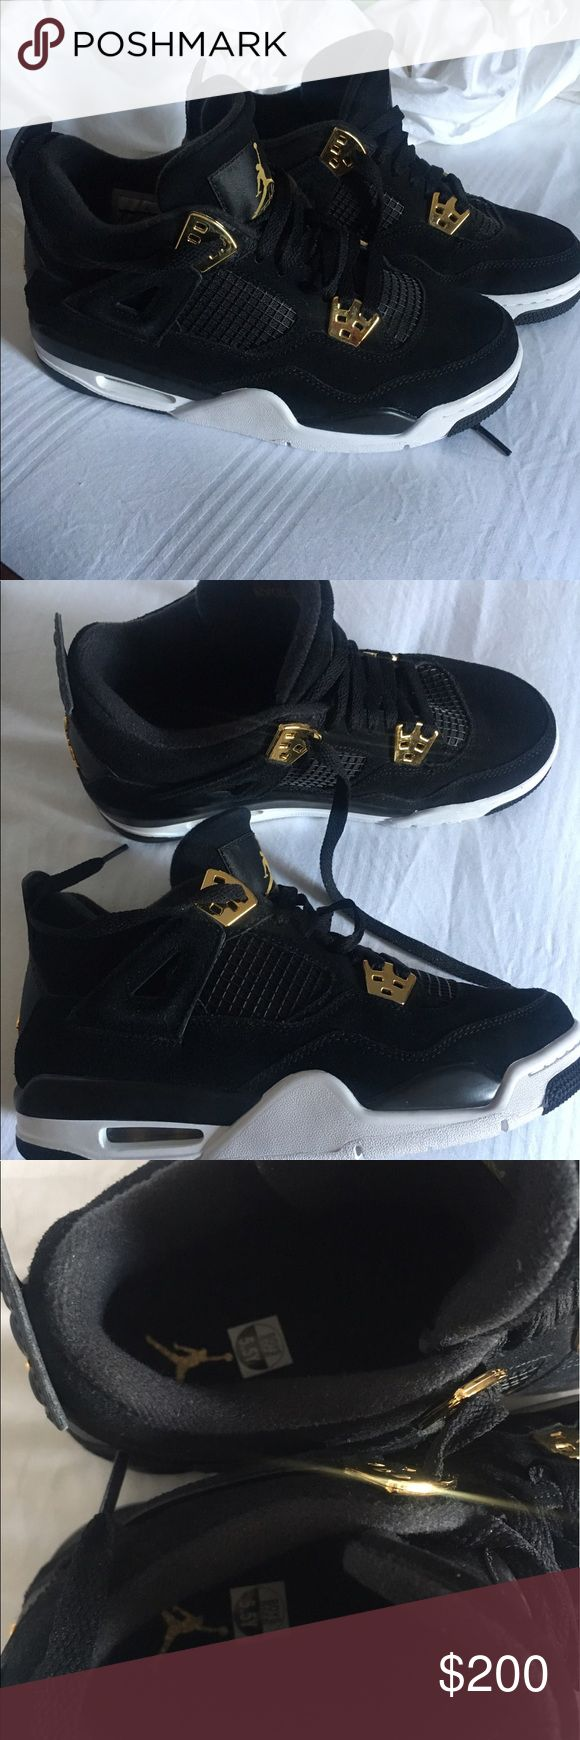 """Jordan Retro 4 """"royal"""" 2017 Release Brand New Jordan's  #4 """"royal"""" black with white sole and gold details selling because they aren't my size brand new condition Jordan Shoes Sneakers"""